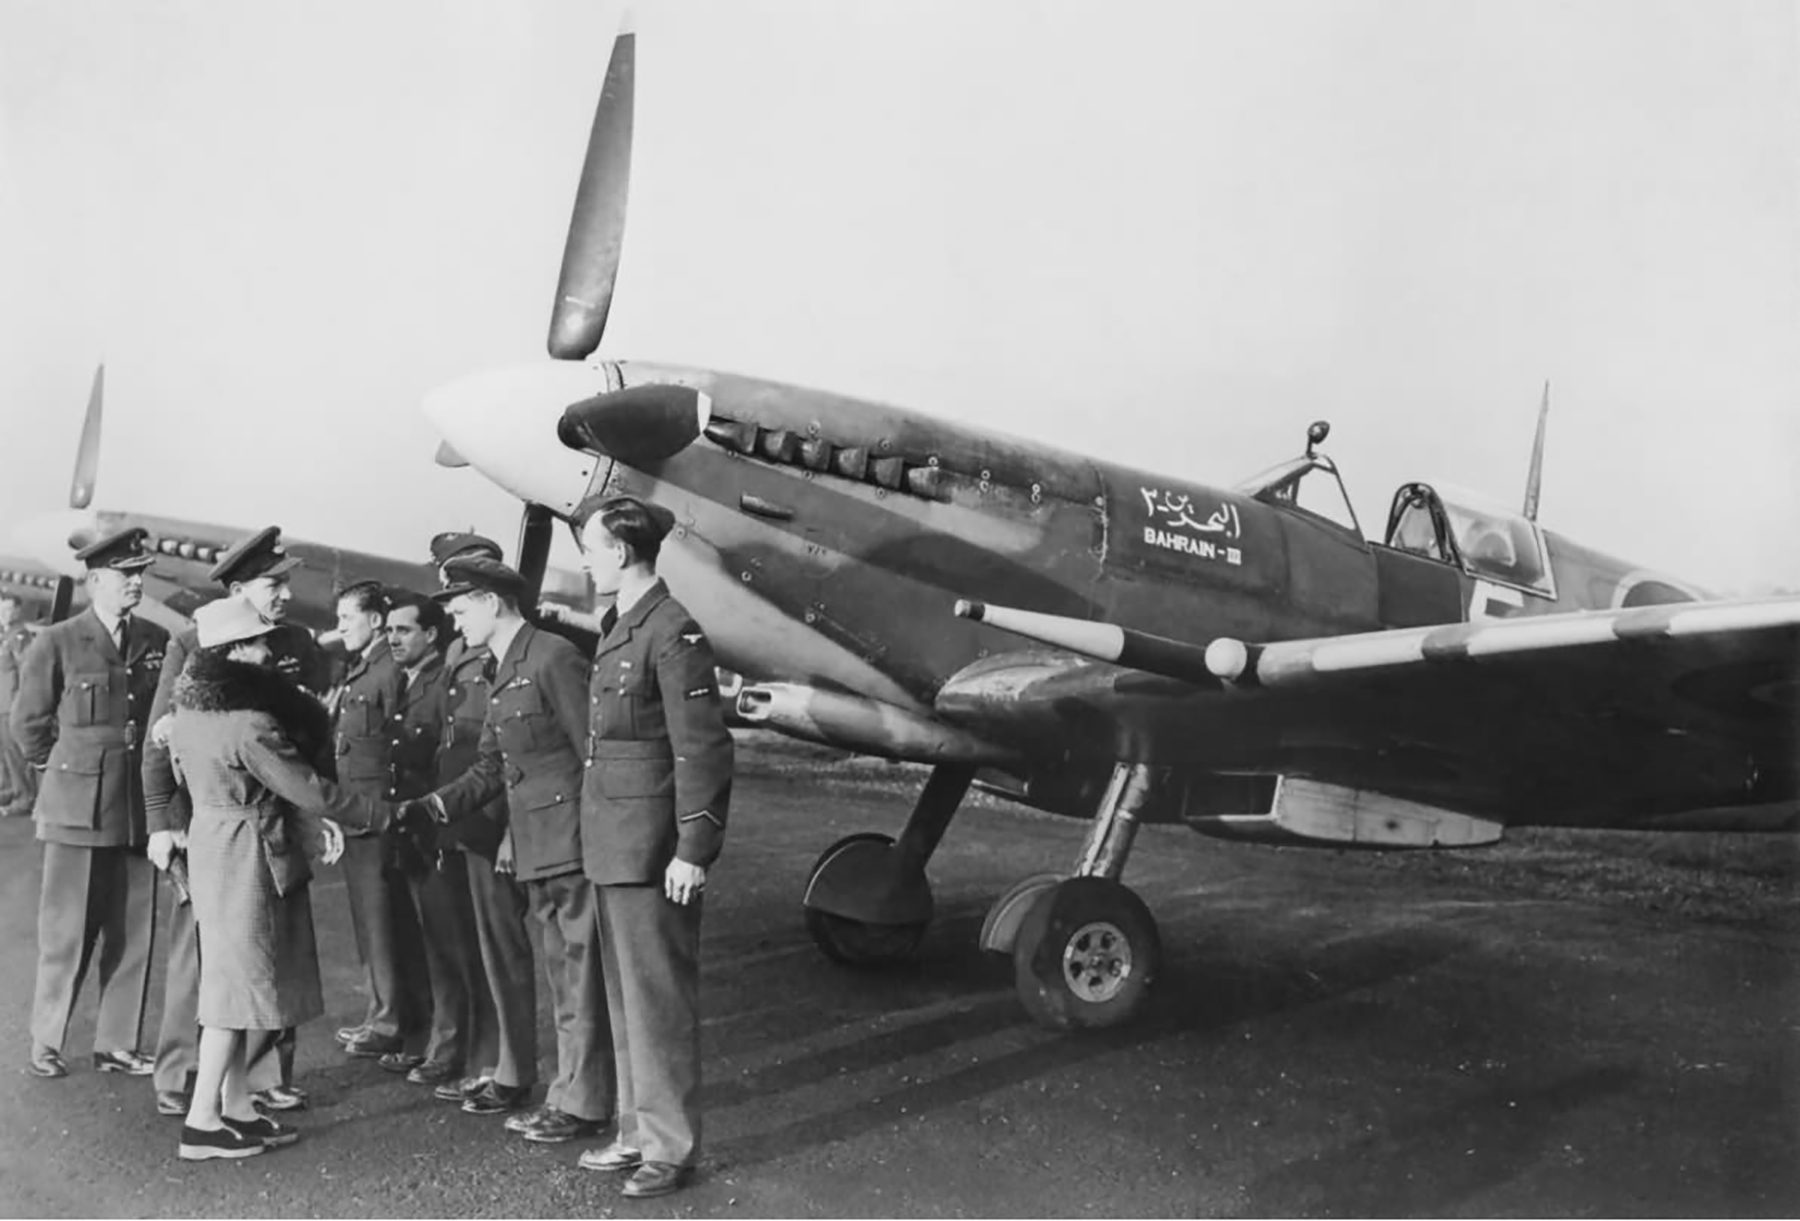 Spitfire MkIX RAF 126Sqn 5K named Bahrain III in a line up at Bradwell Bay on 11 Dec 1944 web 01